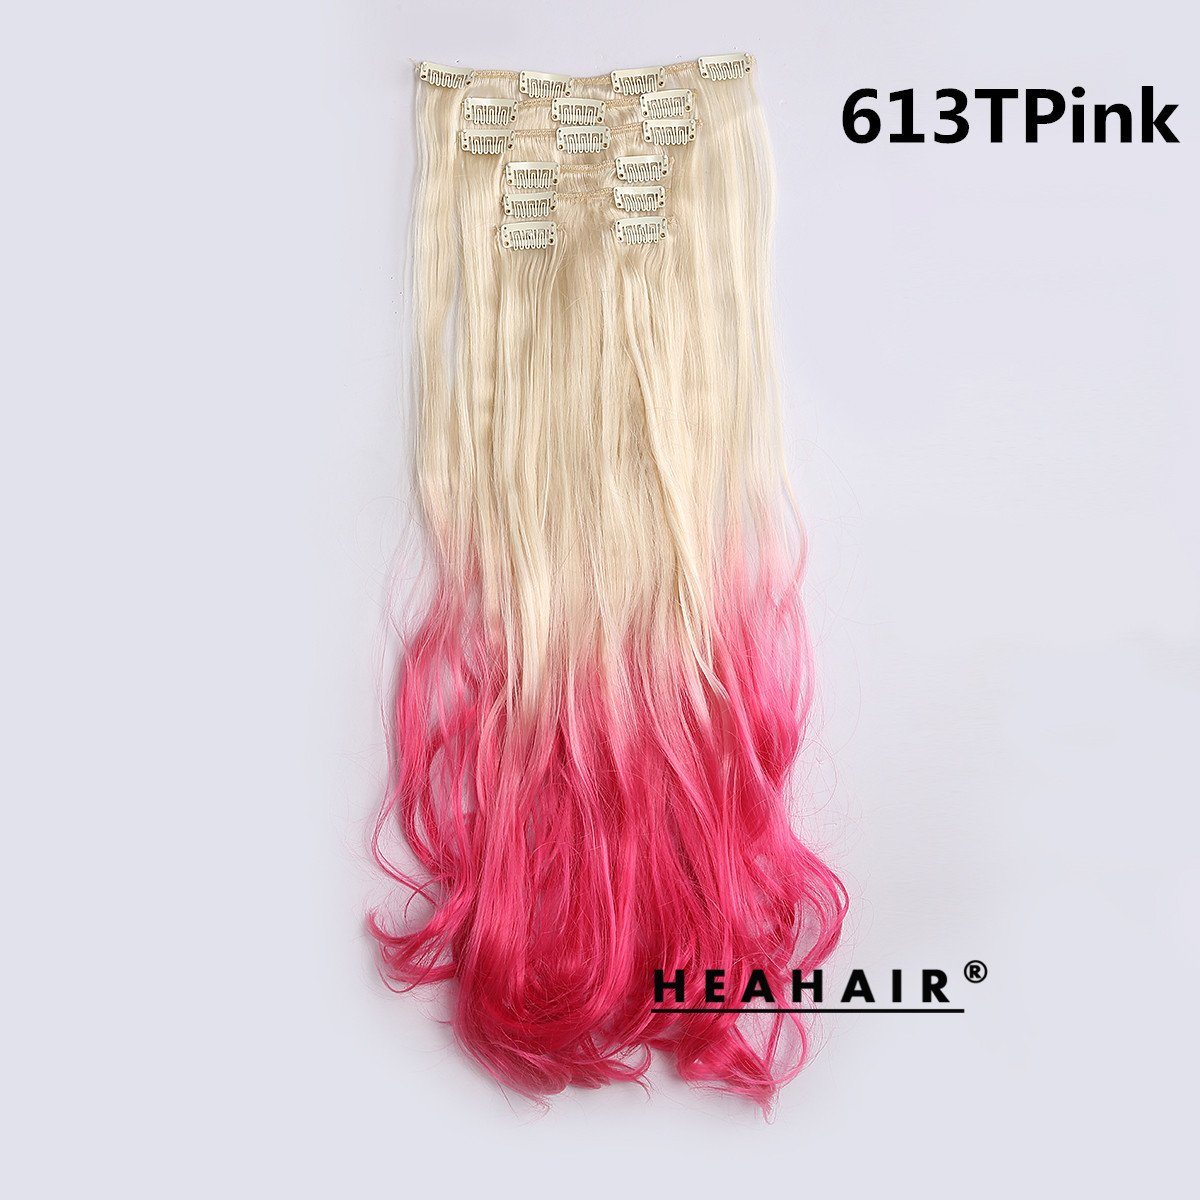 Amazon heahair light blonde to 613t pink ombre synthetic amazon heahair light blonde to 613t pink ombre synthetic curly clip in hair extensions for cosplay beauty pmusecretfo Image collections